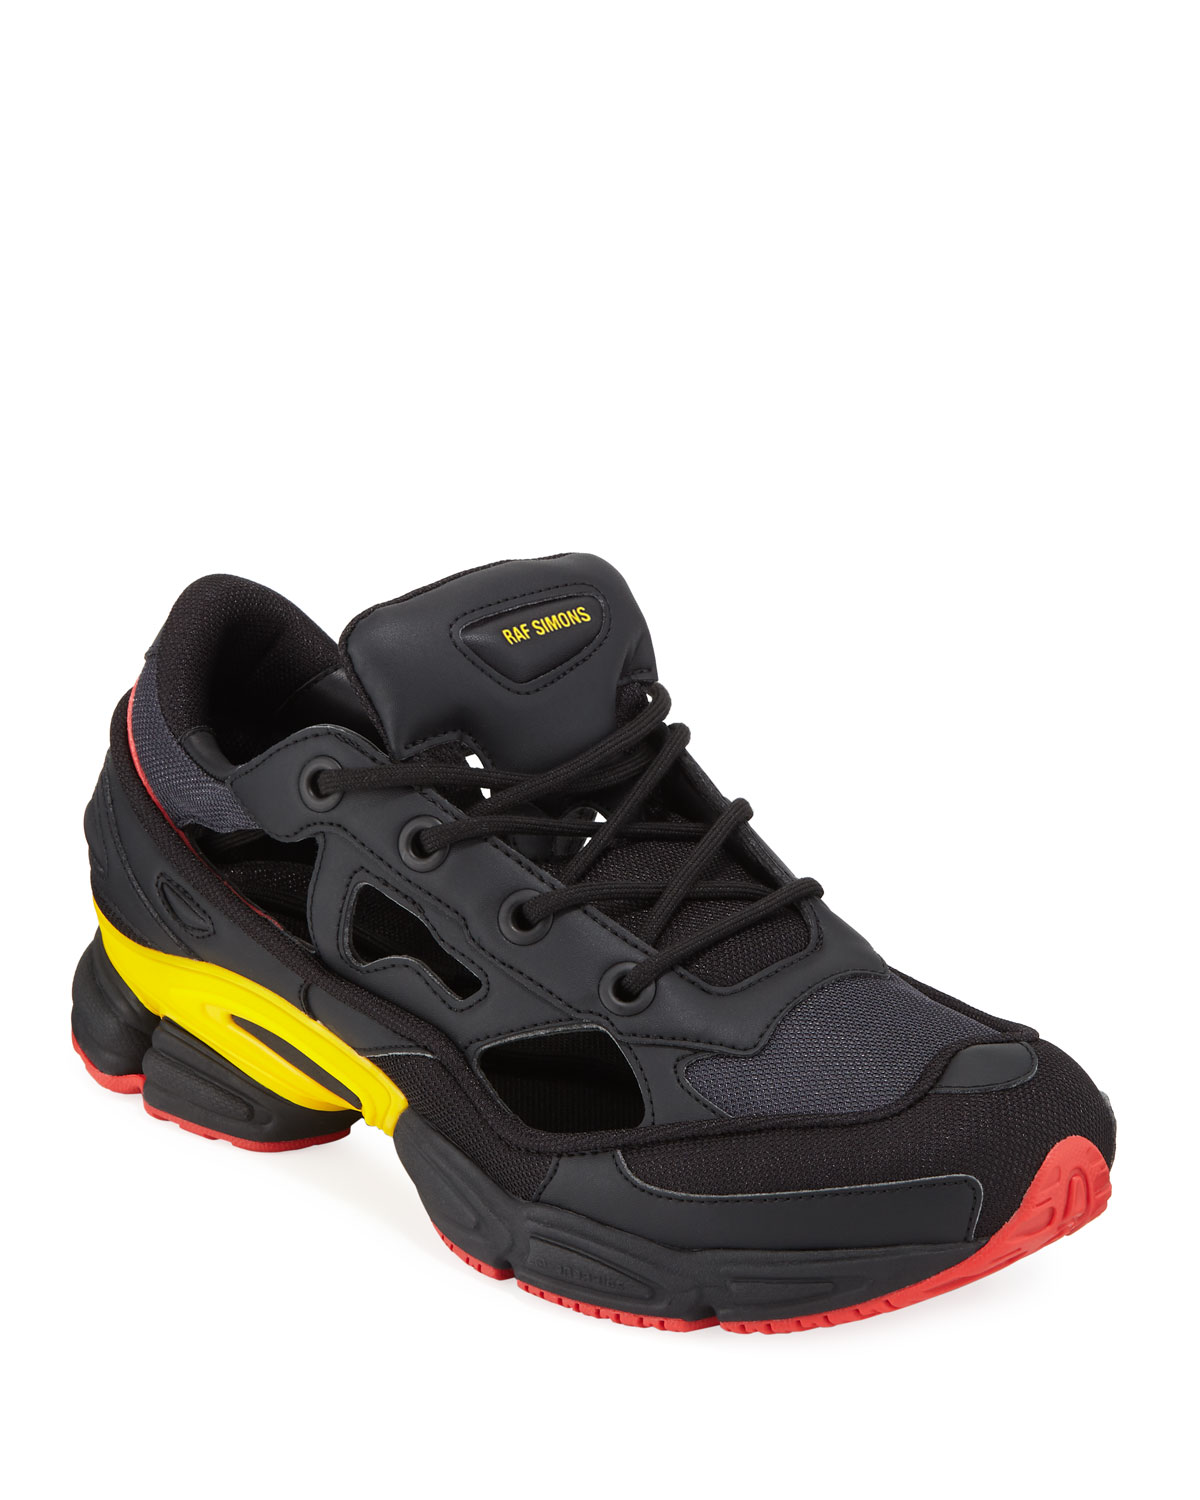 adidas Trainer by Raf Simons Men's Ozweego Replicant Trainer adidas Sneakers, Belgium National Day 68e339